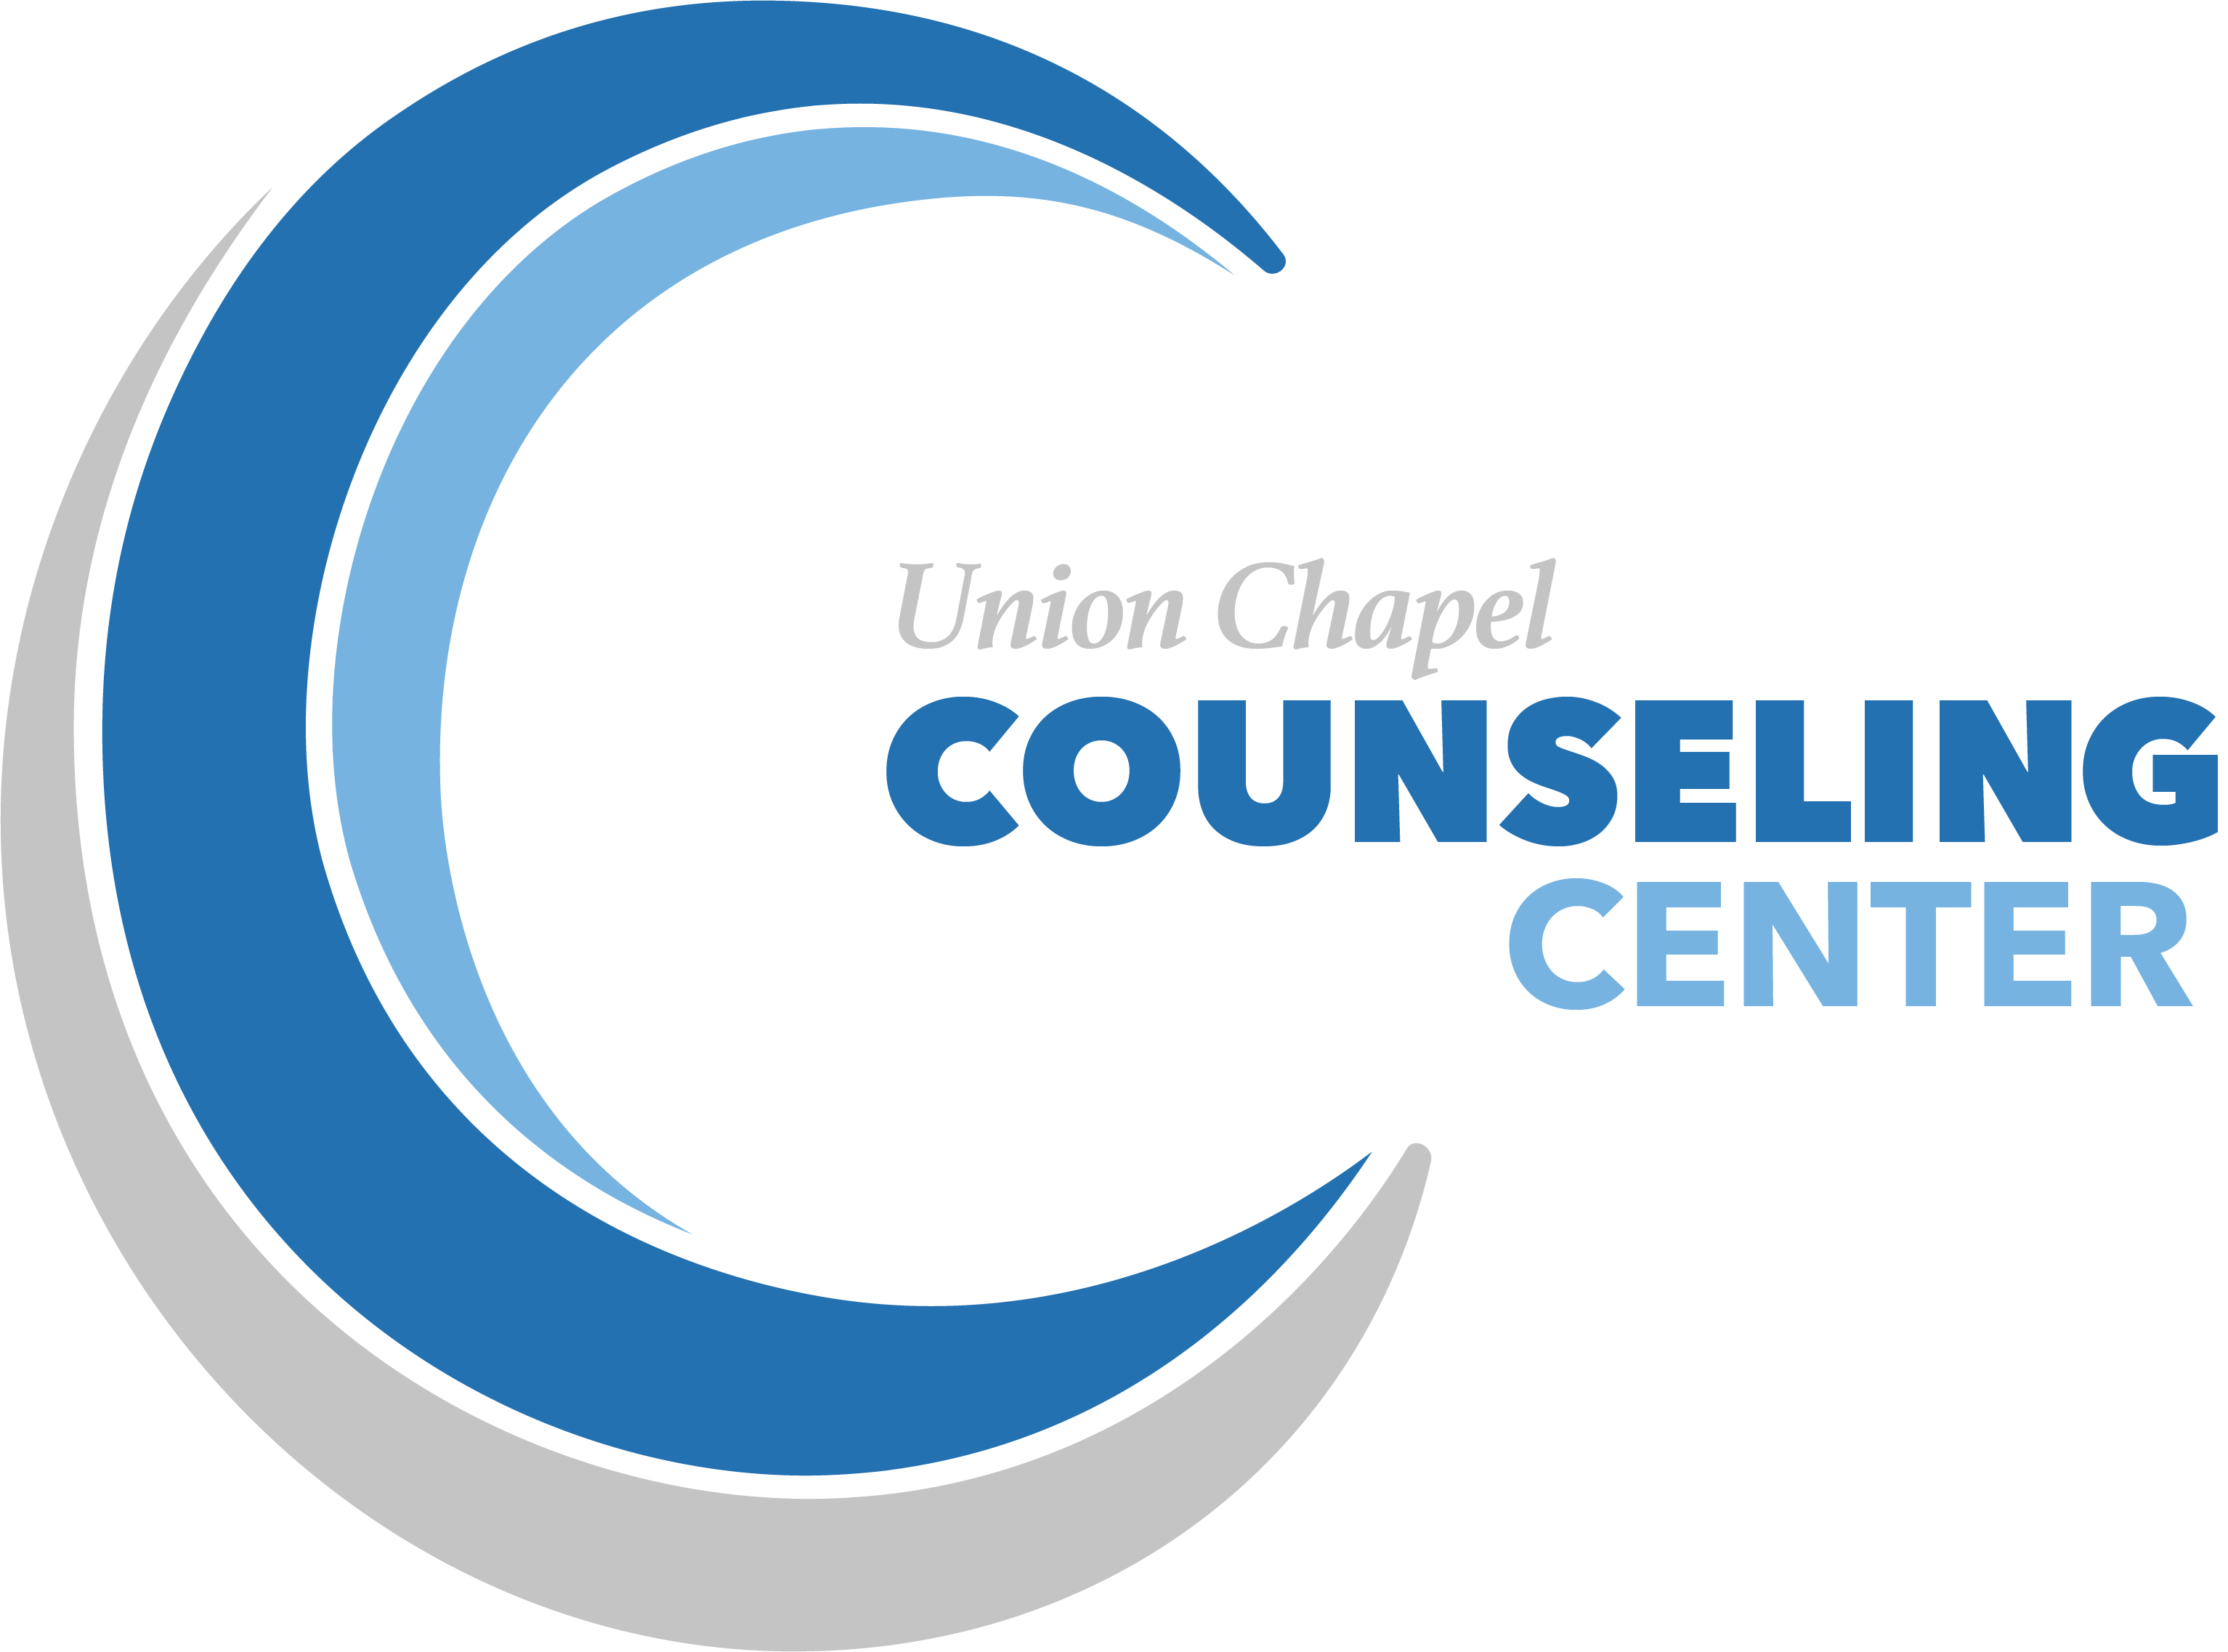 A blue and gray colored logo of The Counseling Center